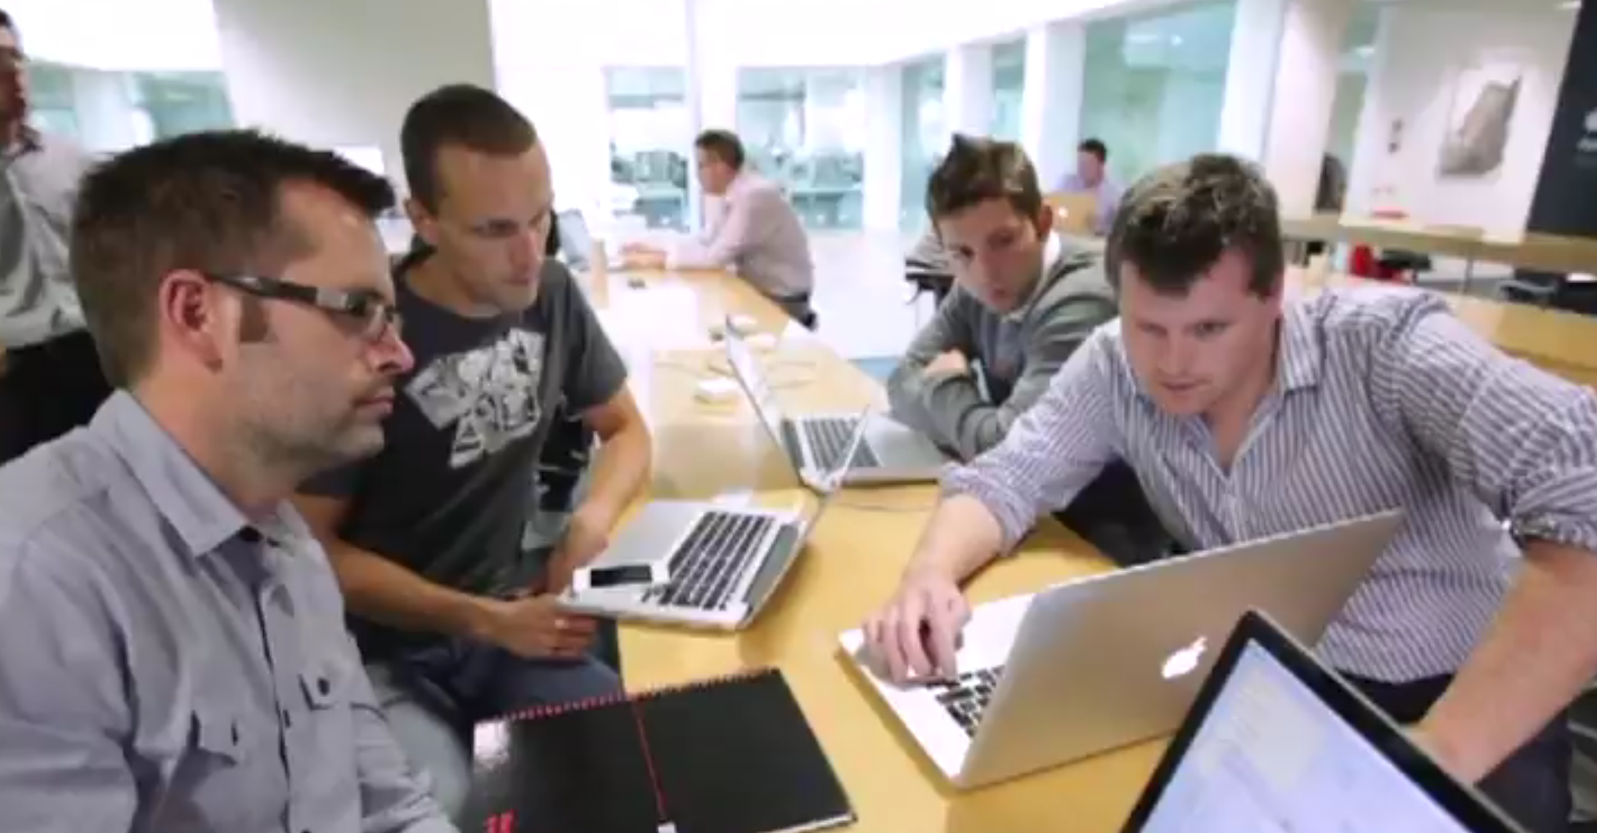 Apple Recruitment Video Still